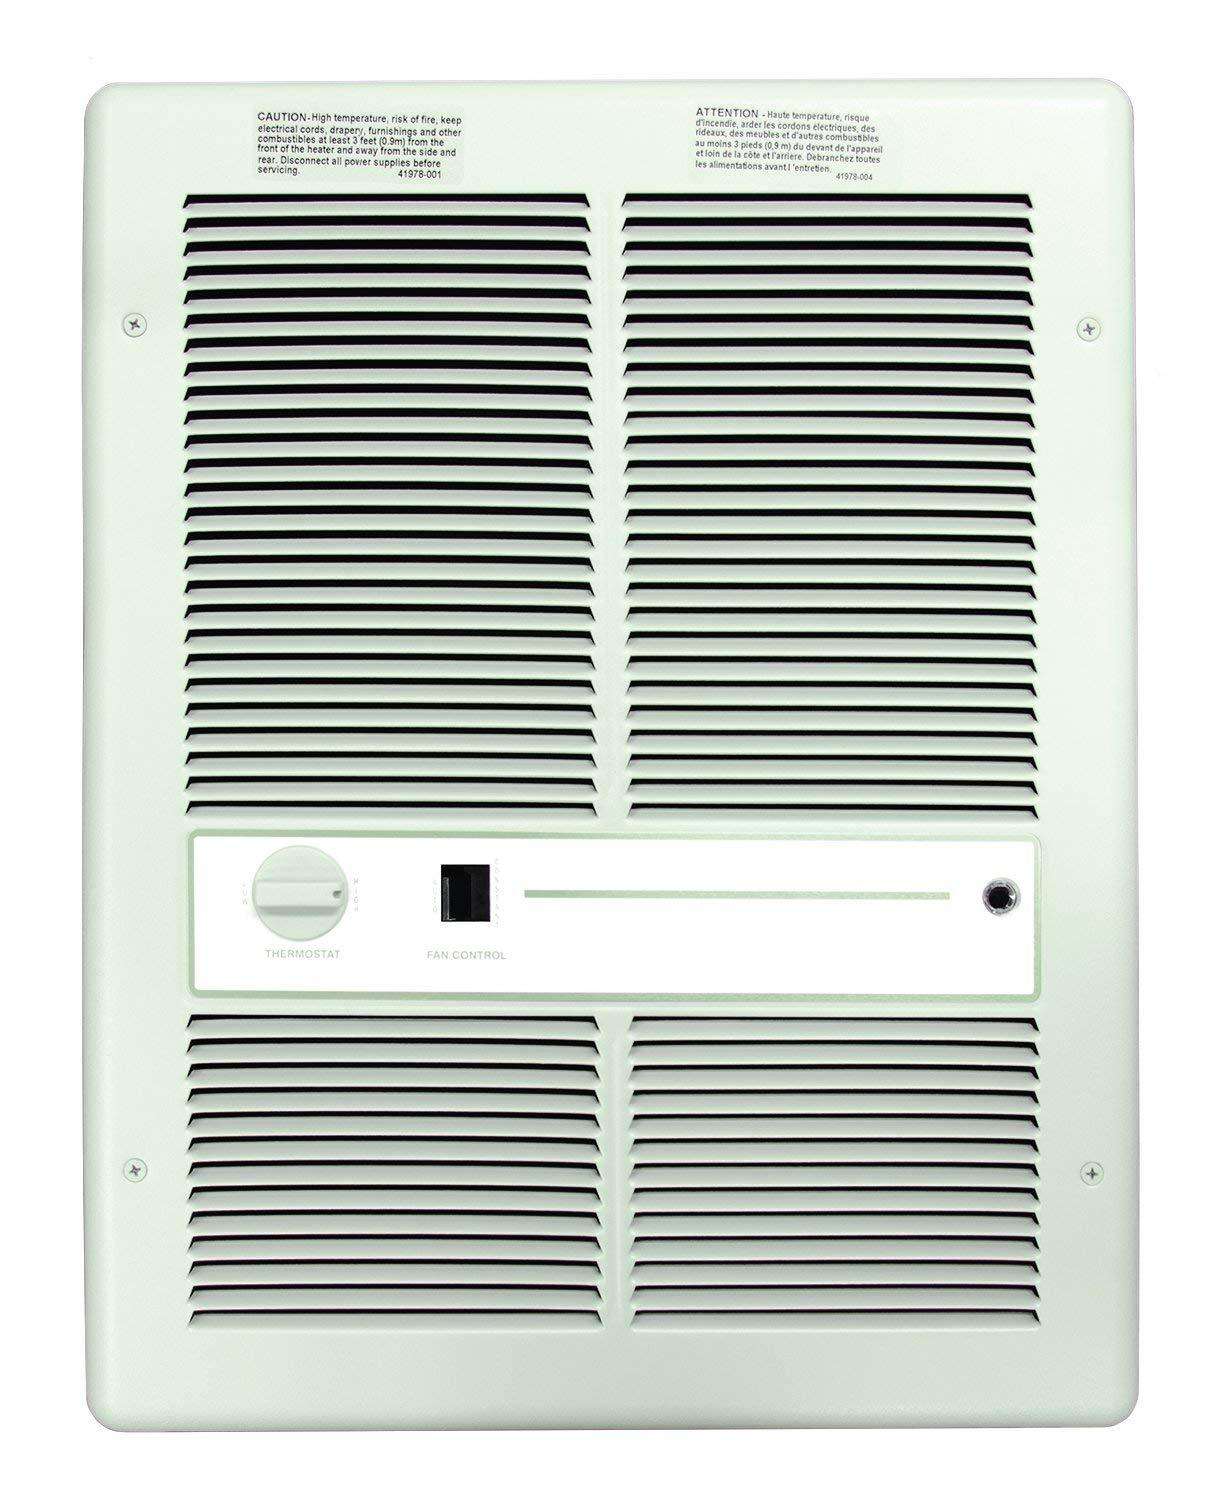 TPI 4800W 240V 3310 Series Fan Forced Wall Heater (White) - With Summer Fan Switch - 1 Pole Thermostat - H3317TSRPW